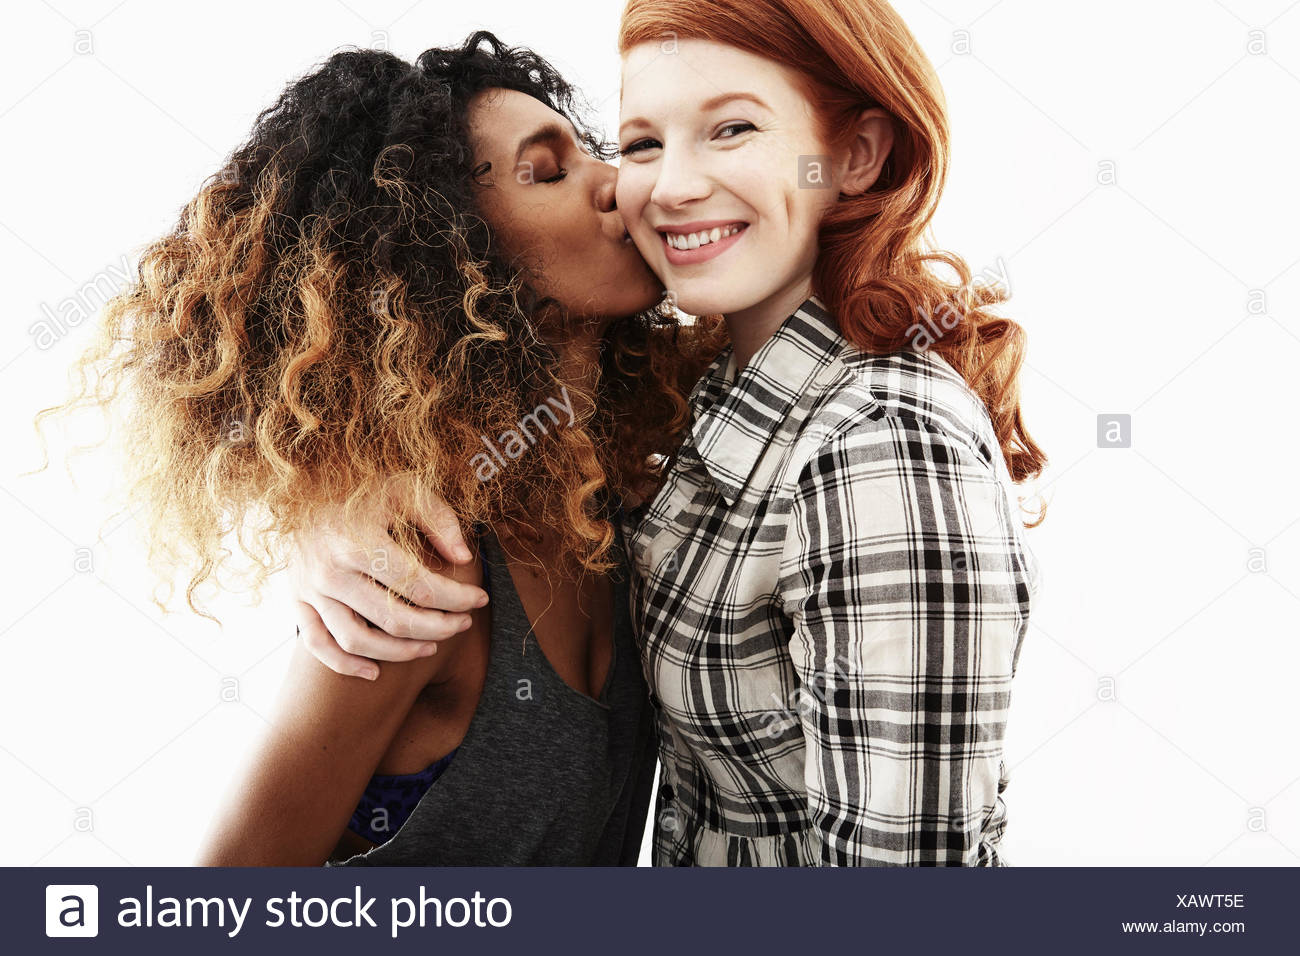 Studio portrait of two young adult women friends - Stock Image